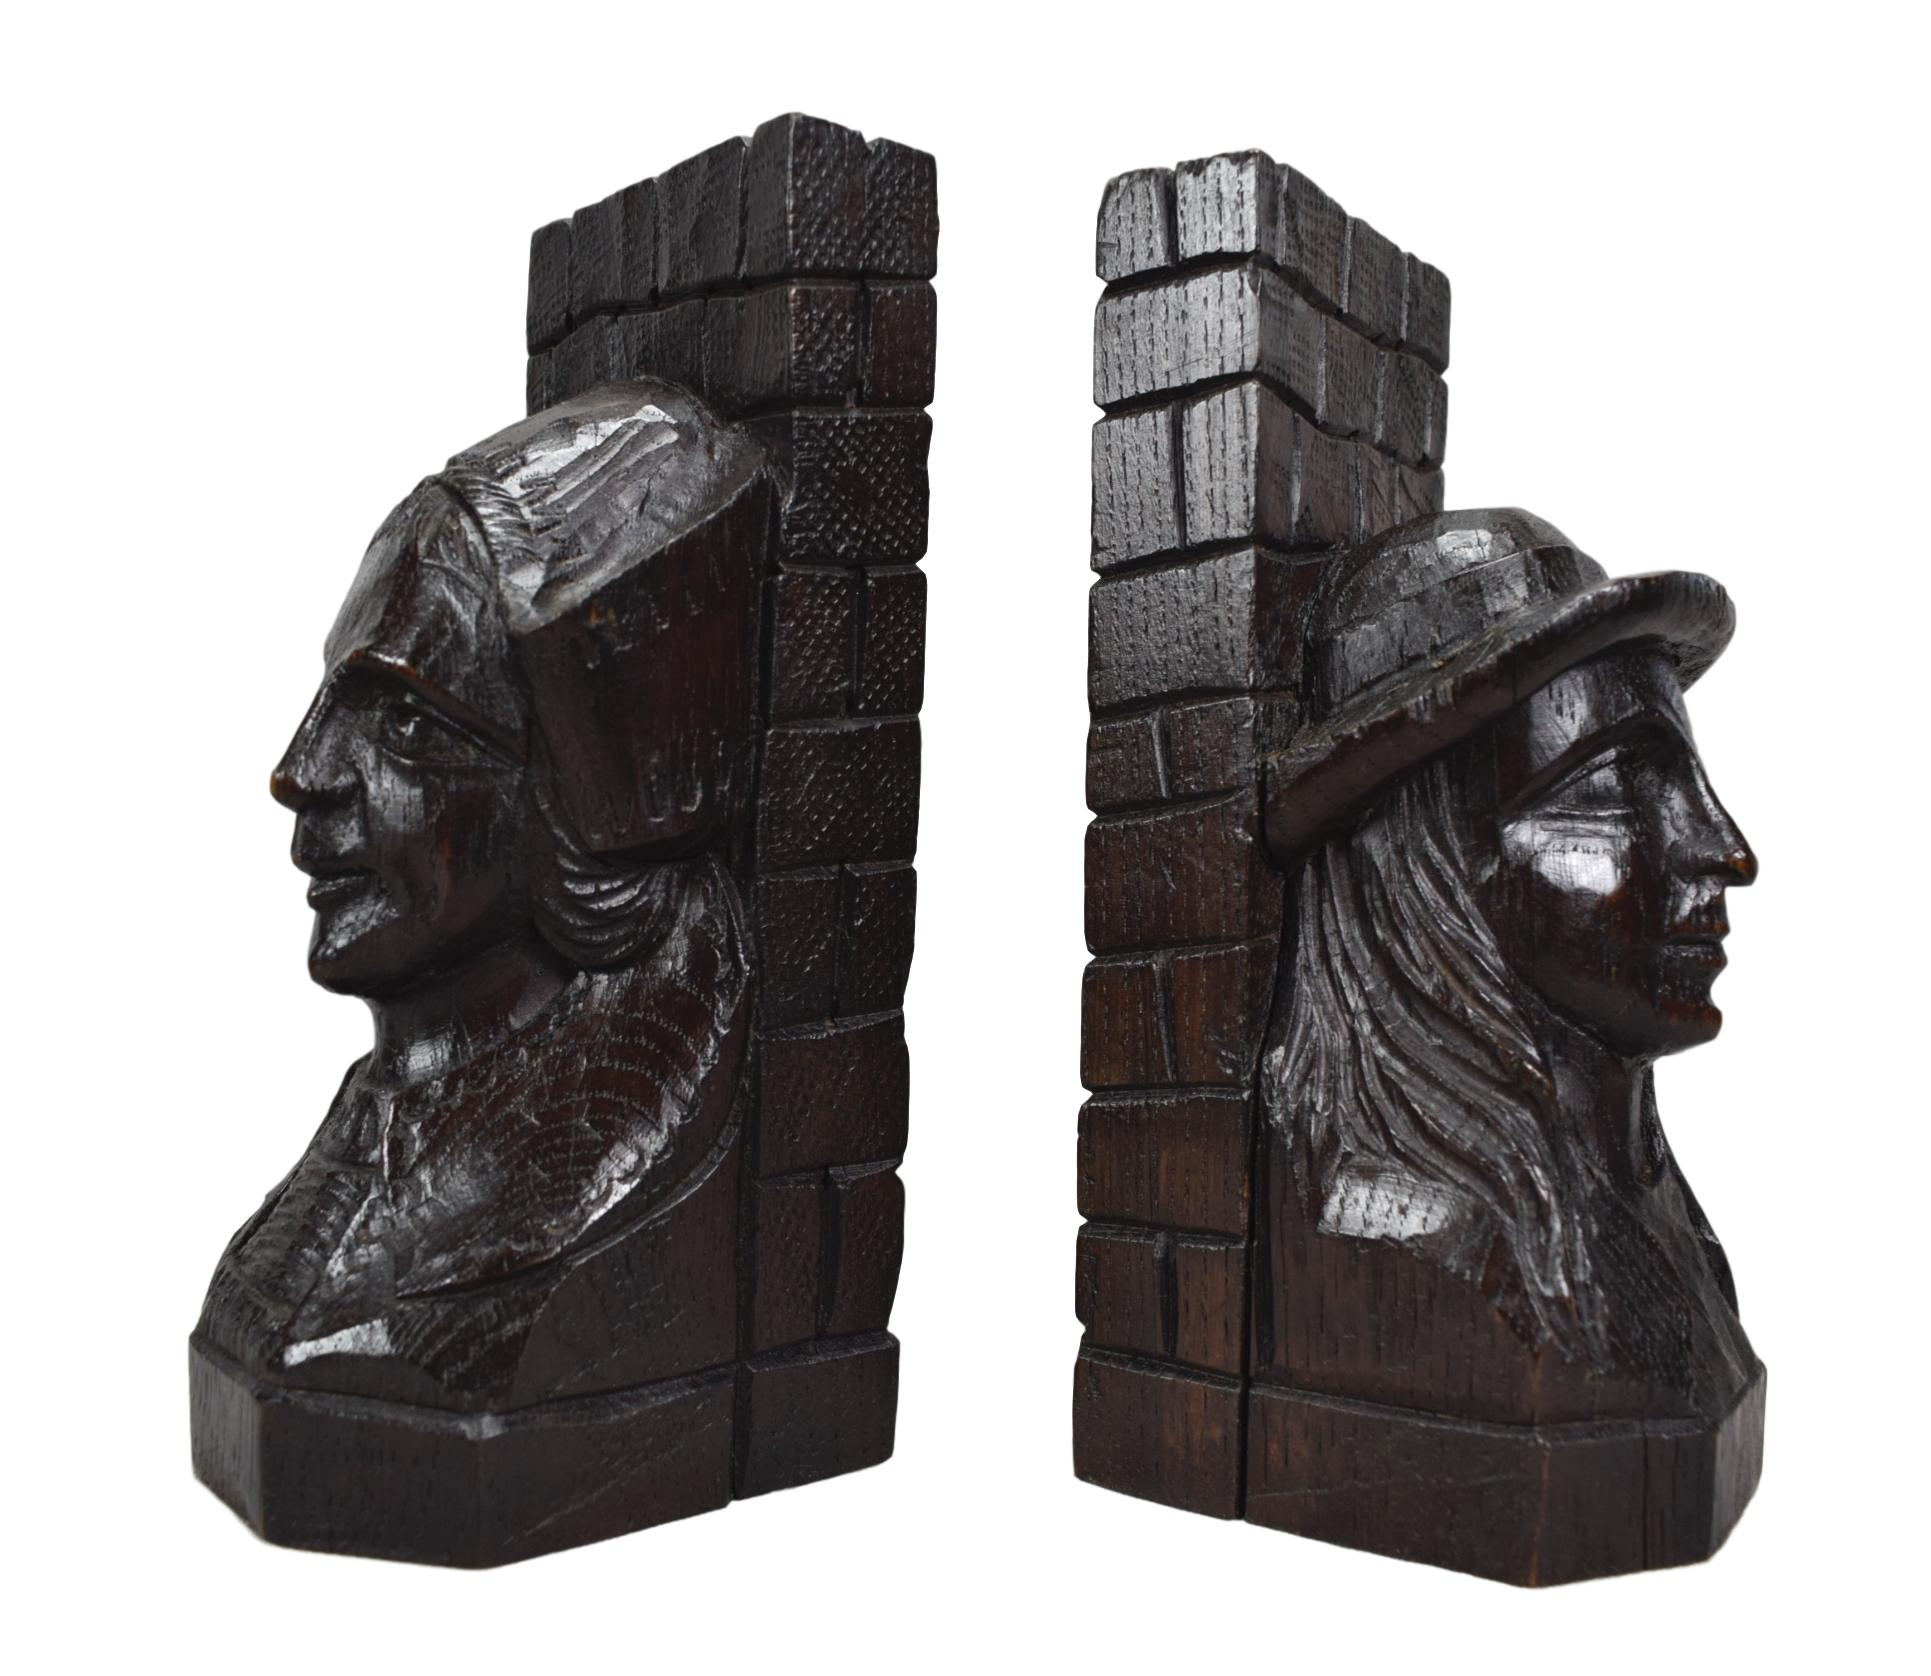 Breton Bookends - Charmantiques